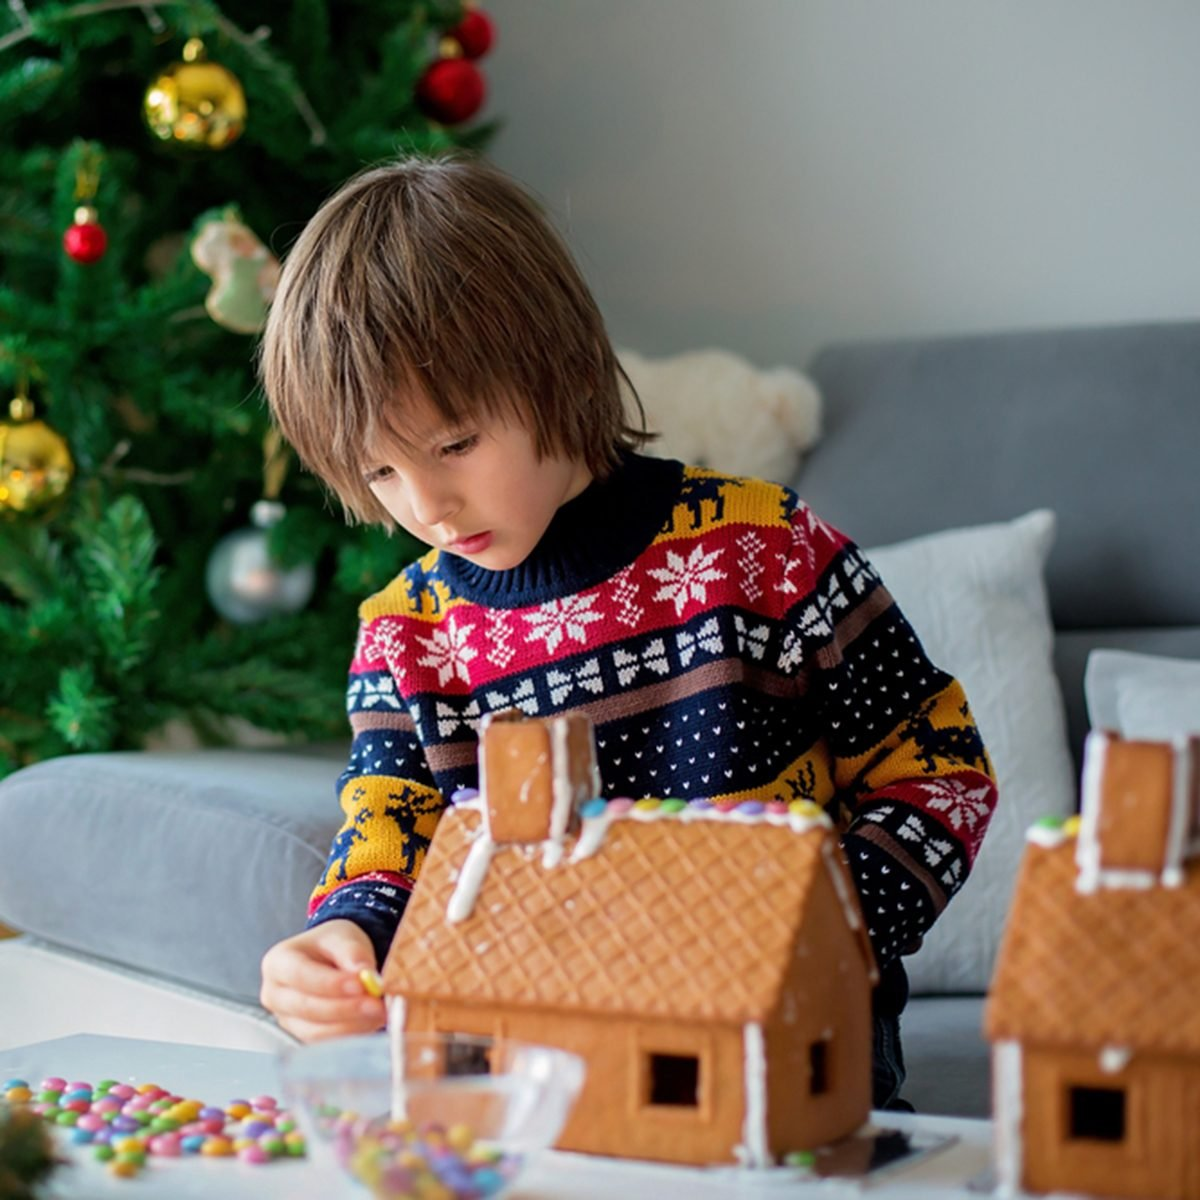 Adorable preschool child, boy, decorating gingerbread houses for Christmas at home